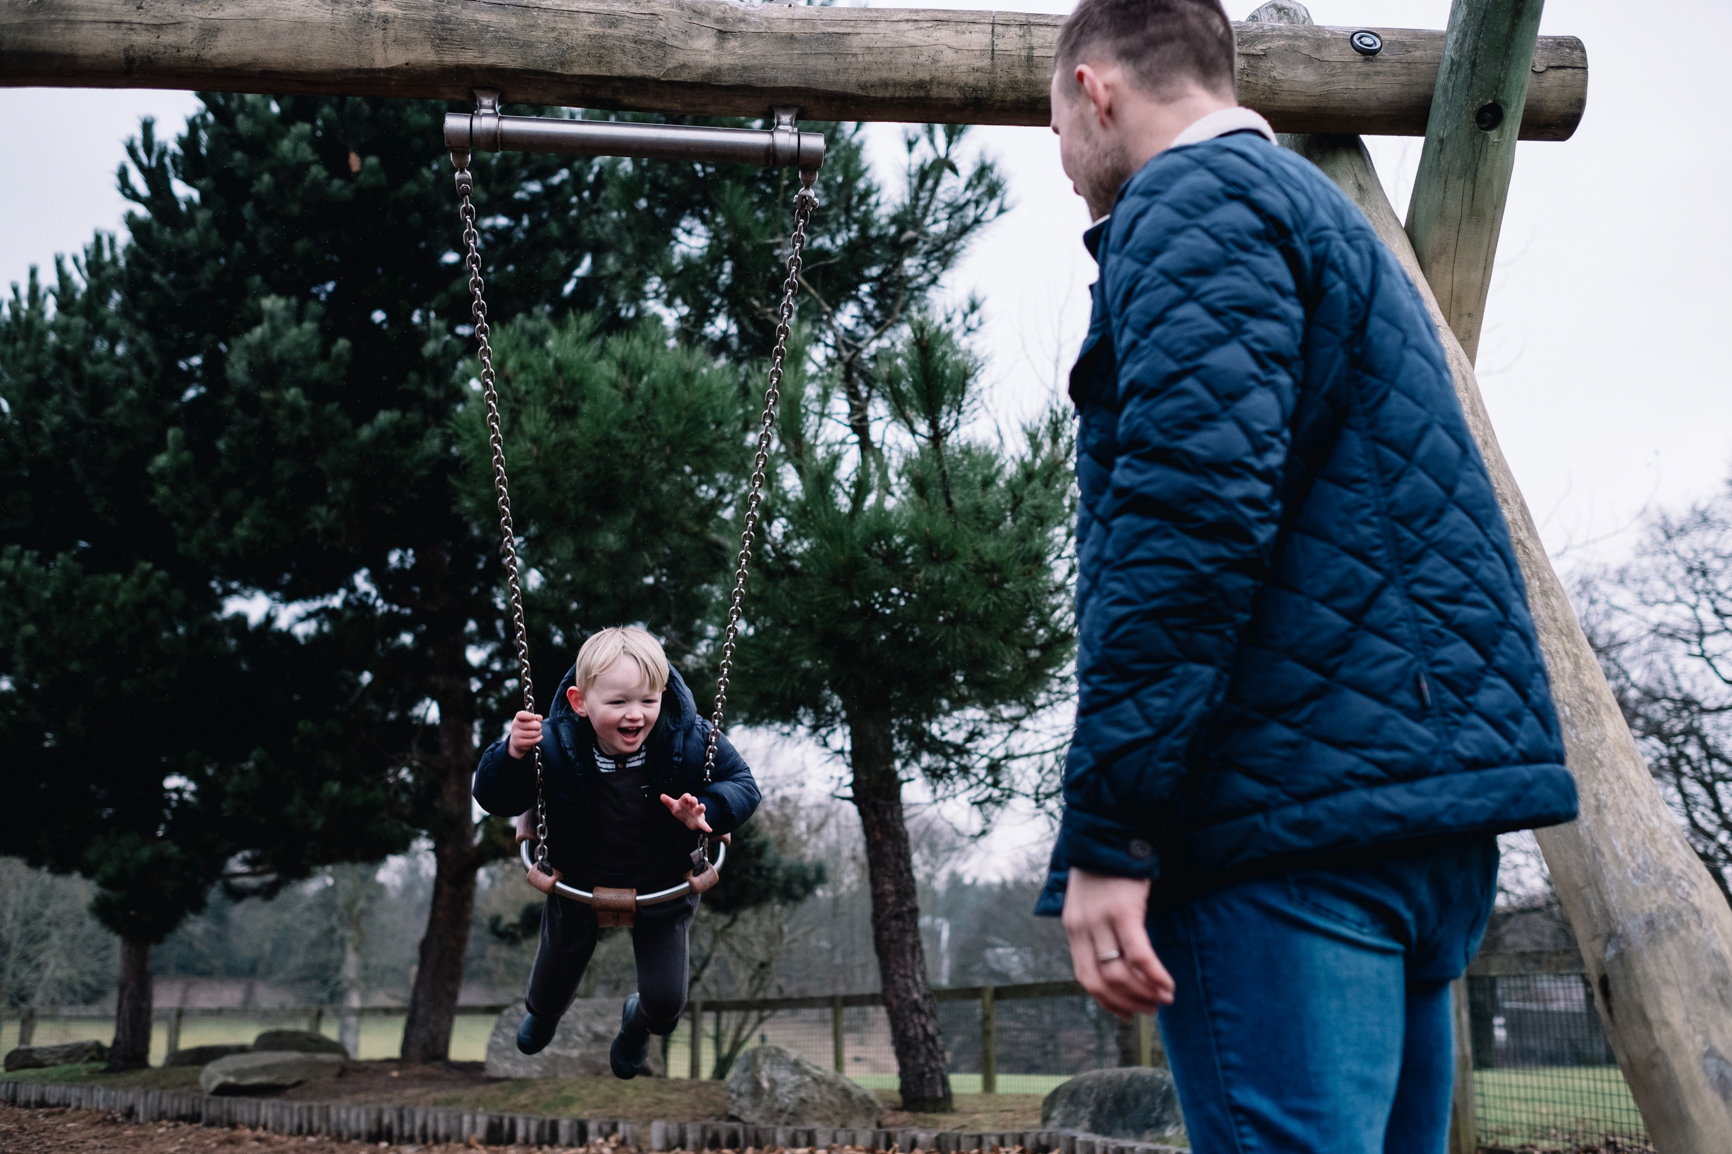 Father stands pushing his son on a swing.